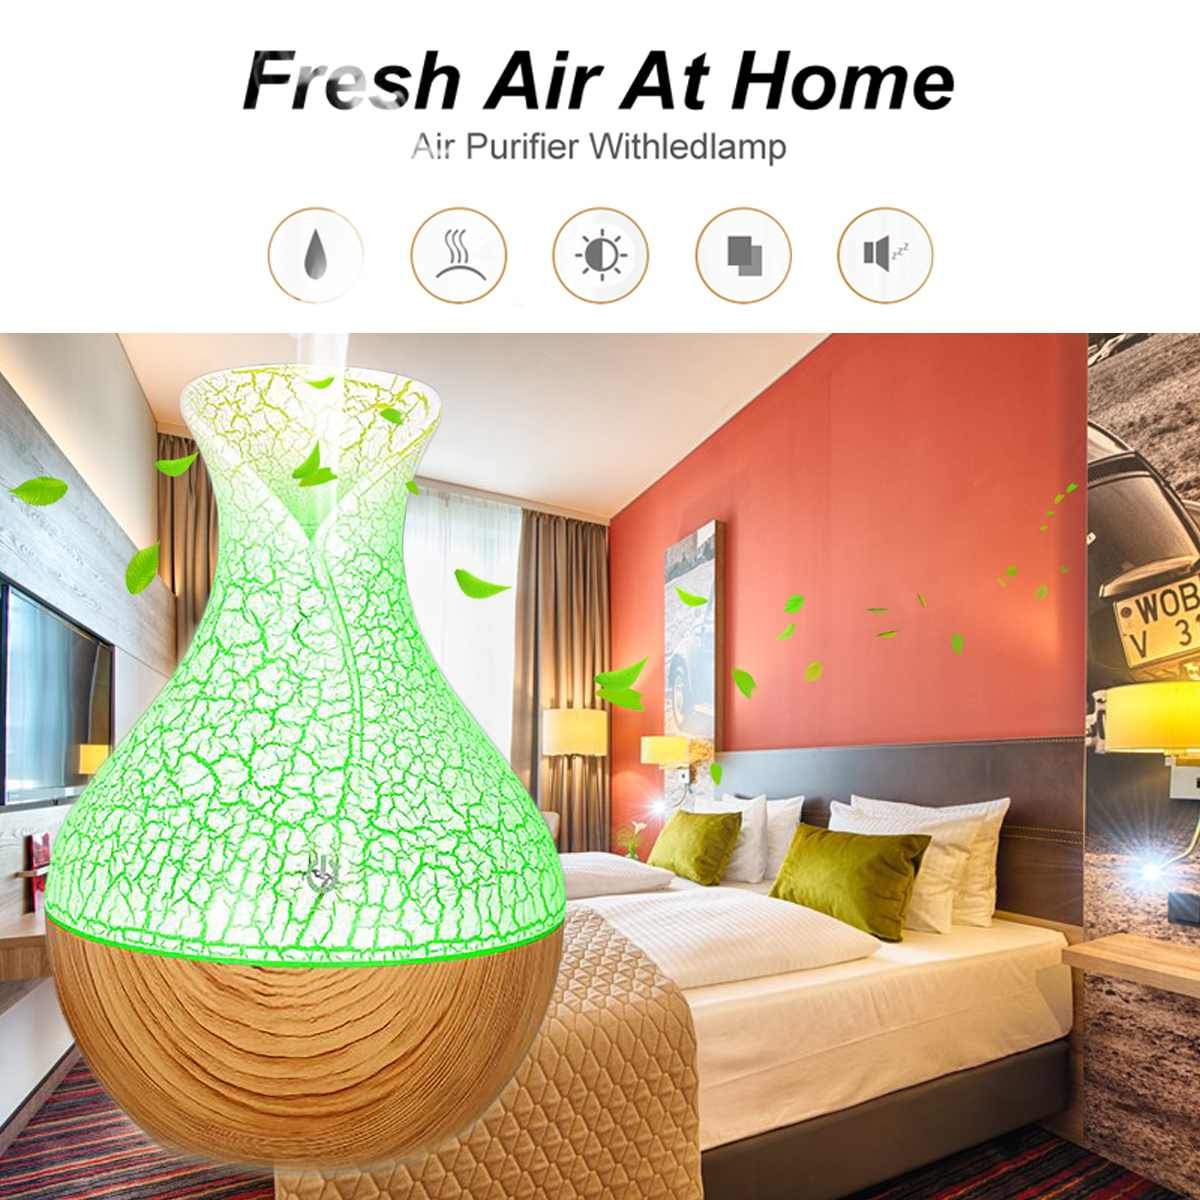 USB Color LED Light Night Ultrasonic Humidifier Air Purifier Essential Oil Aroma Diffuser Spa Cold Mist Purifier Office Home Car 3 in 1 aroma essential oil diffuser ultrasonic cans humidifier air purifier led night light usb fan car air freshener for office